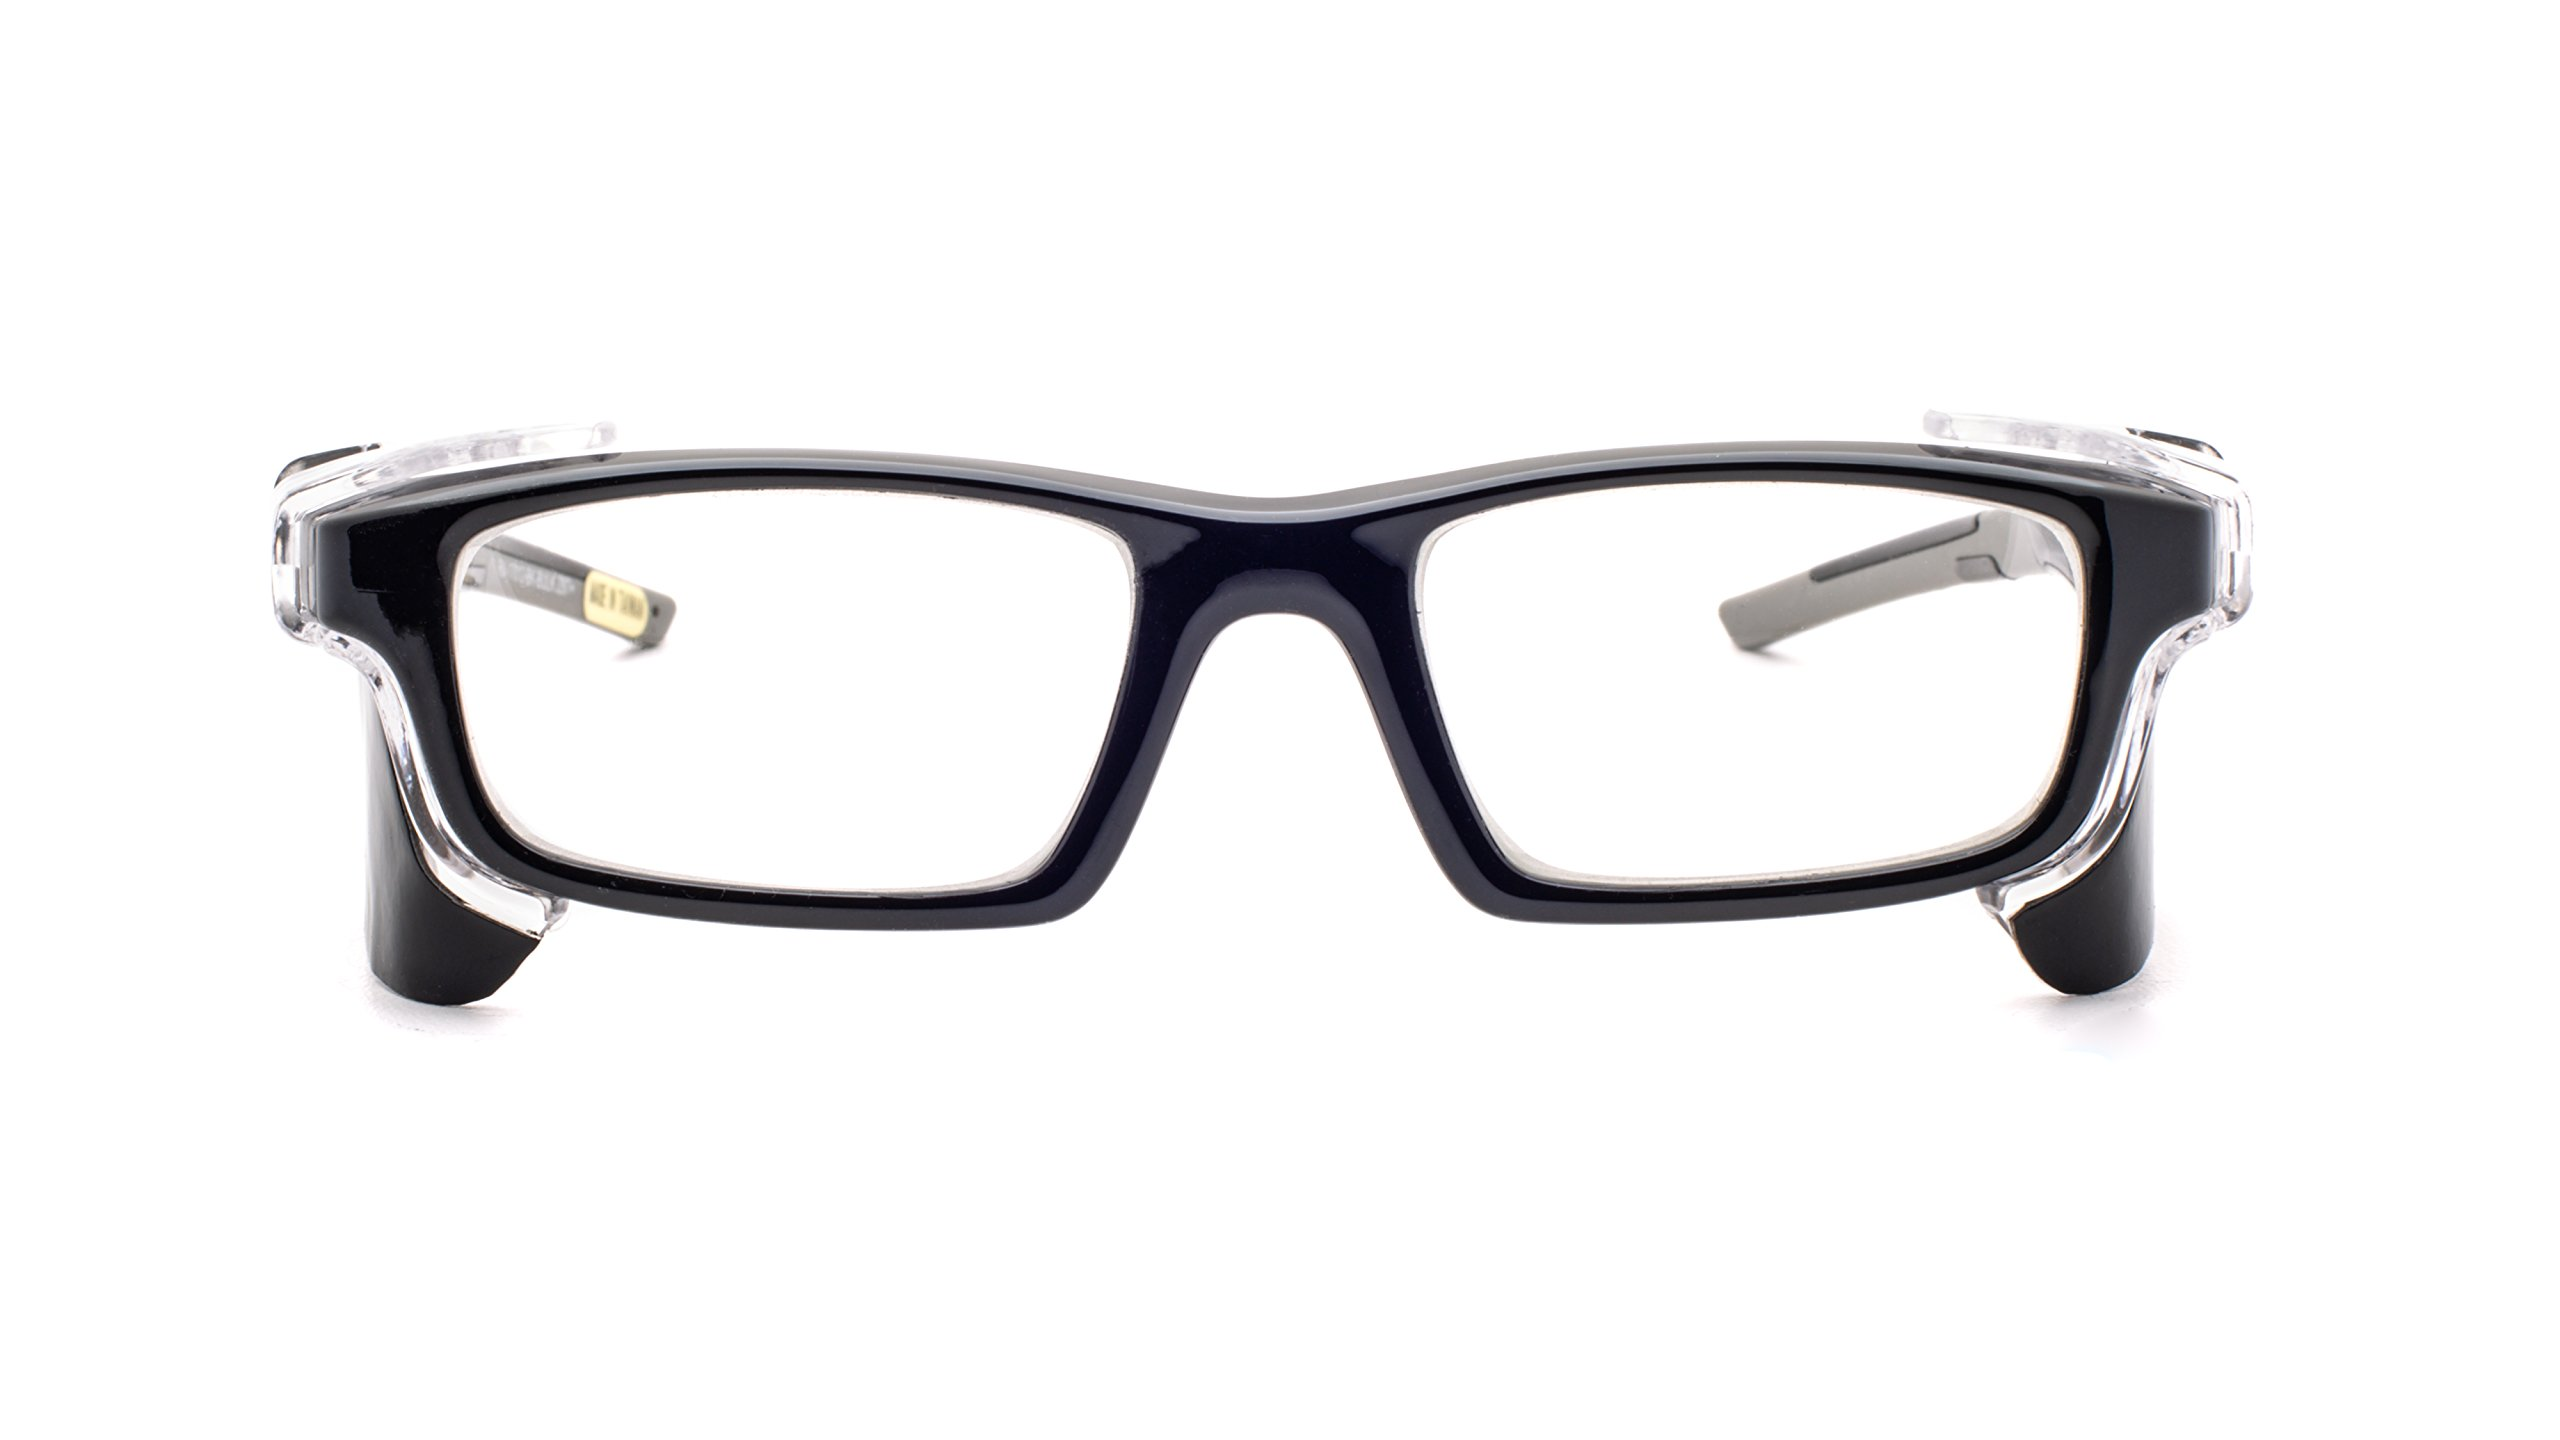 Leaded Glasses Radiation Protective Eyewear RG-17012-BK by Phillips Safety Products, Inc. (Image #2)